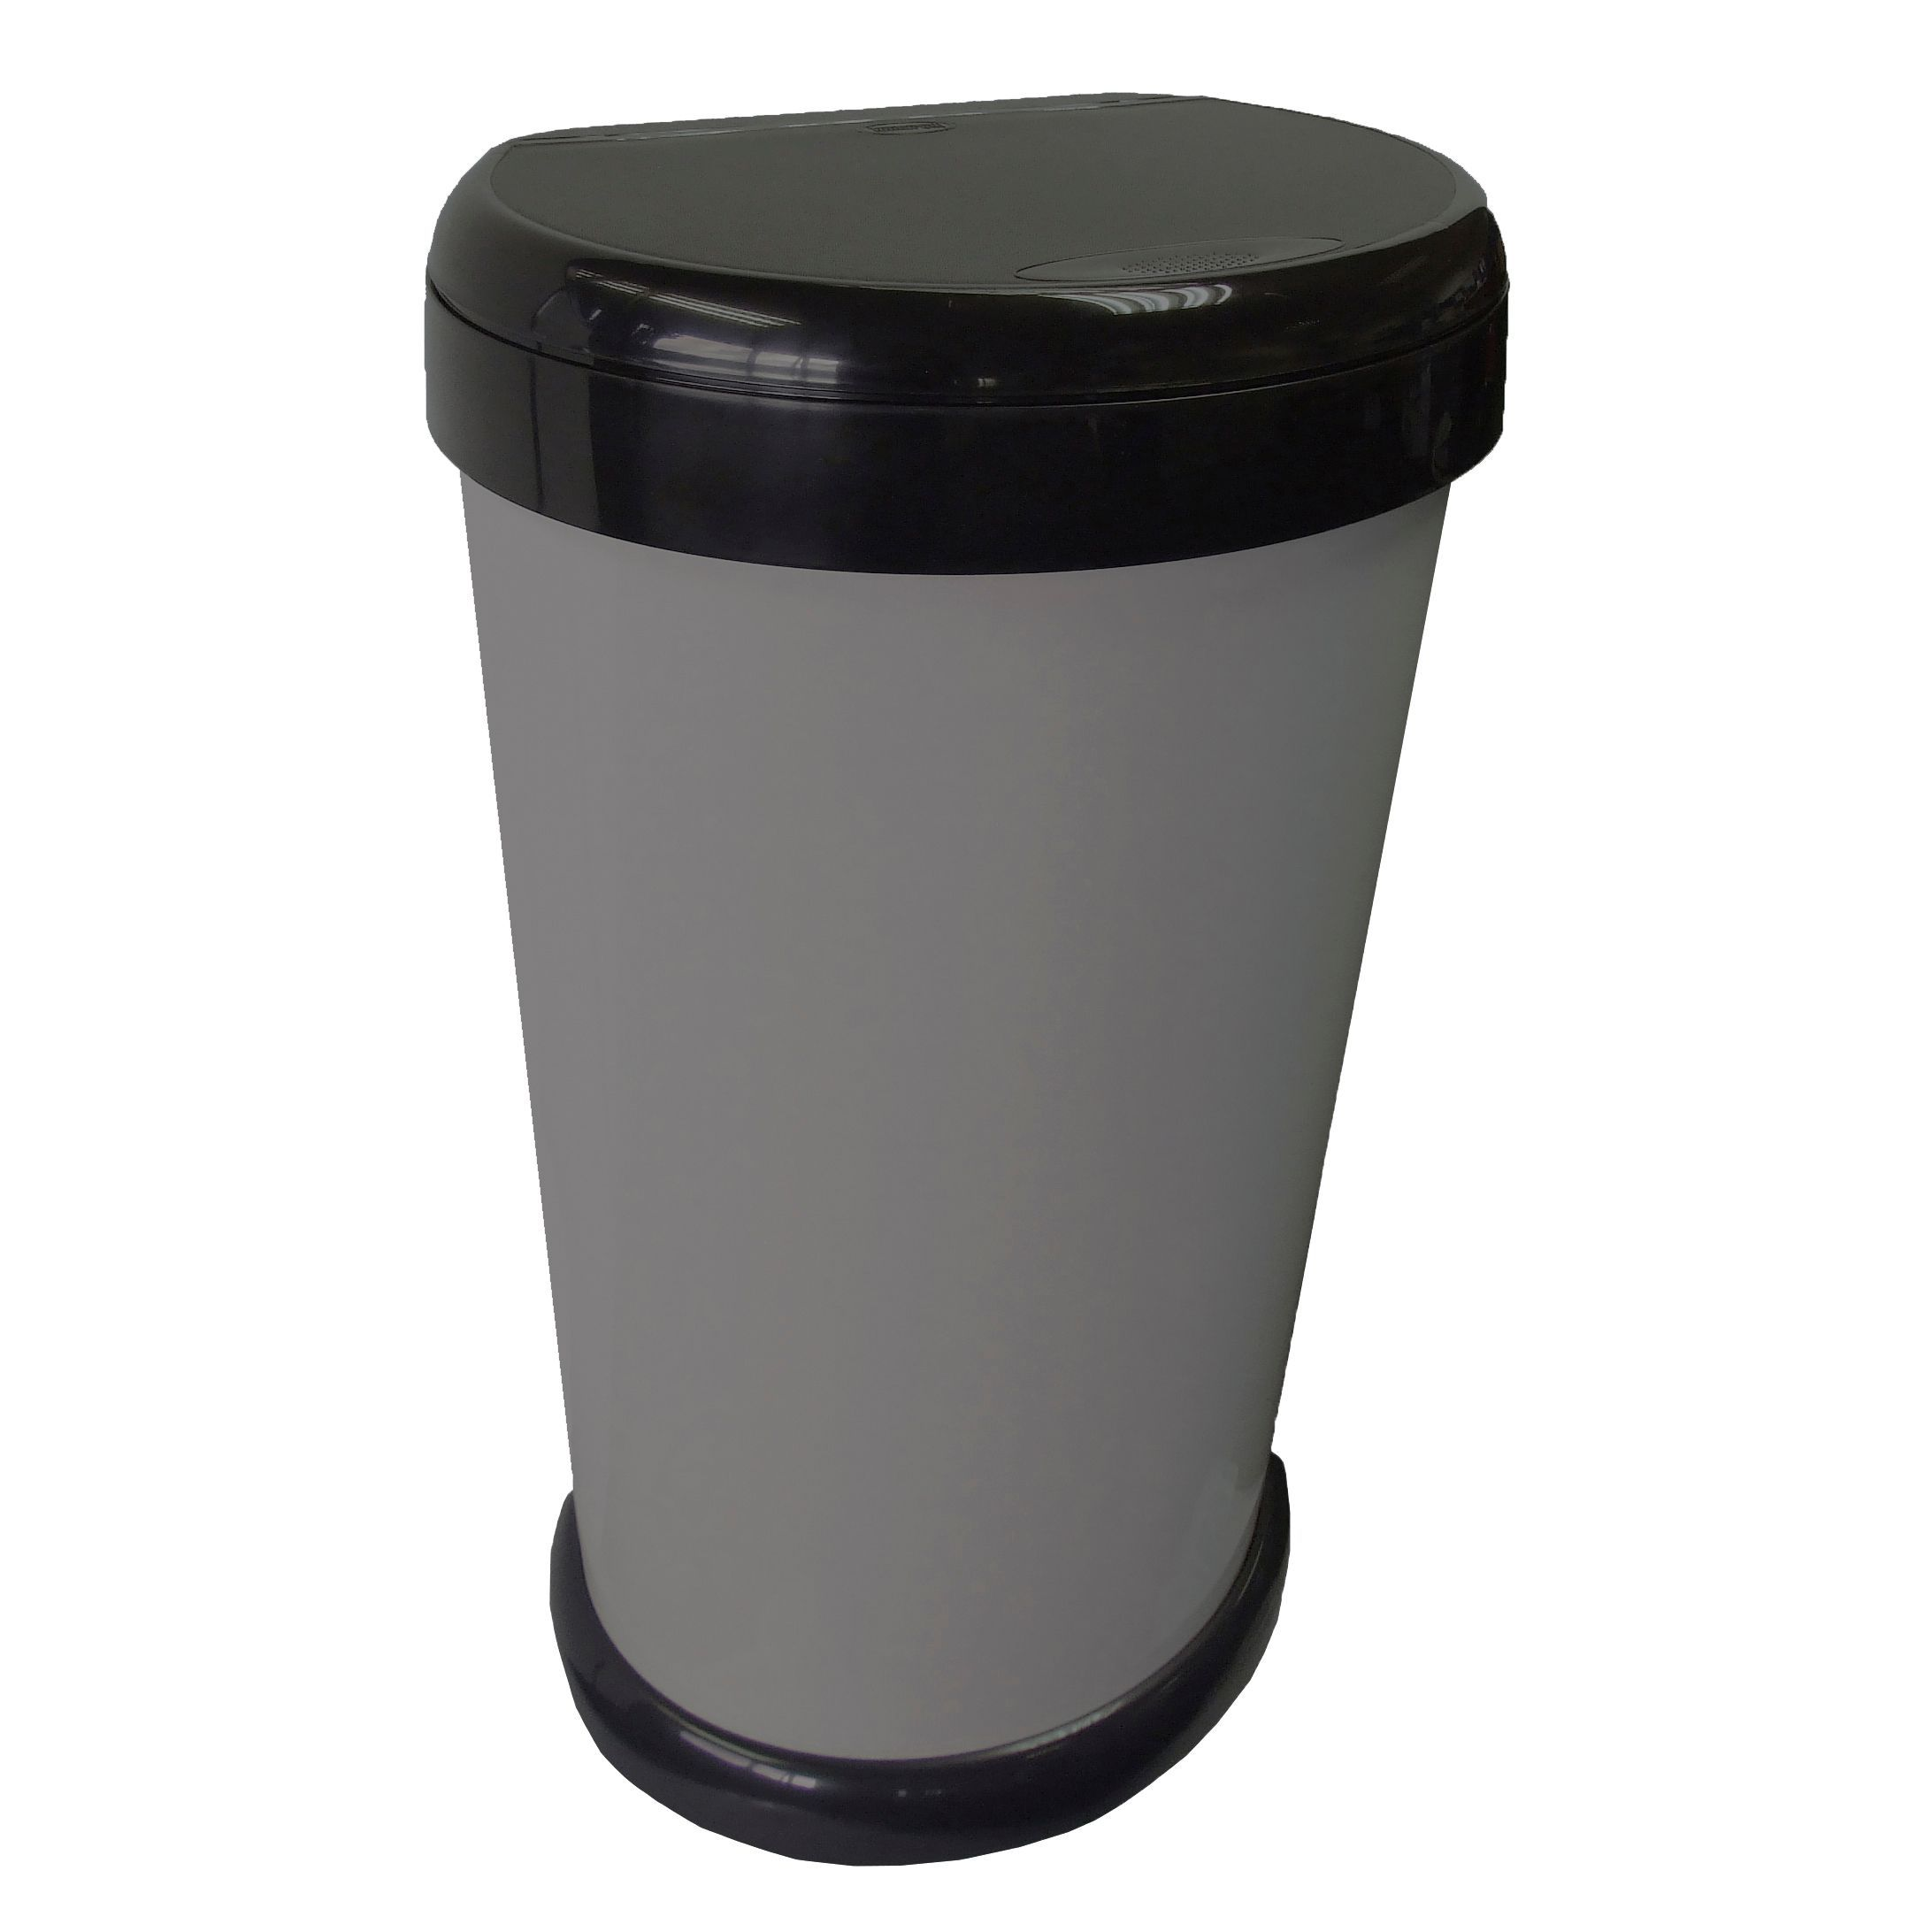 Tontarelli Moda Anthracite Plastic Touch Top Kitchen Bin,